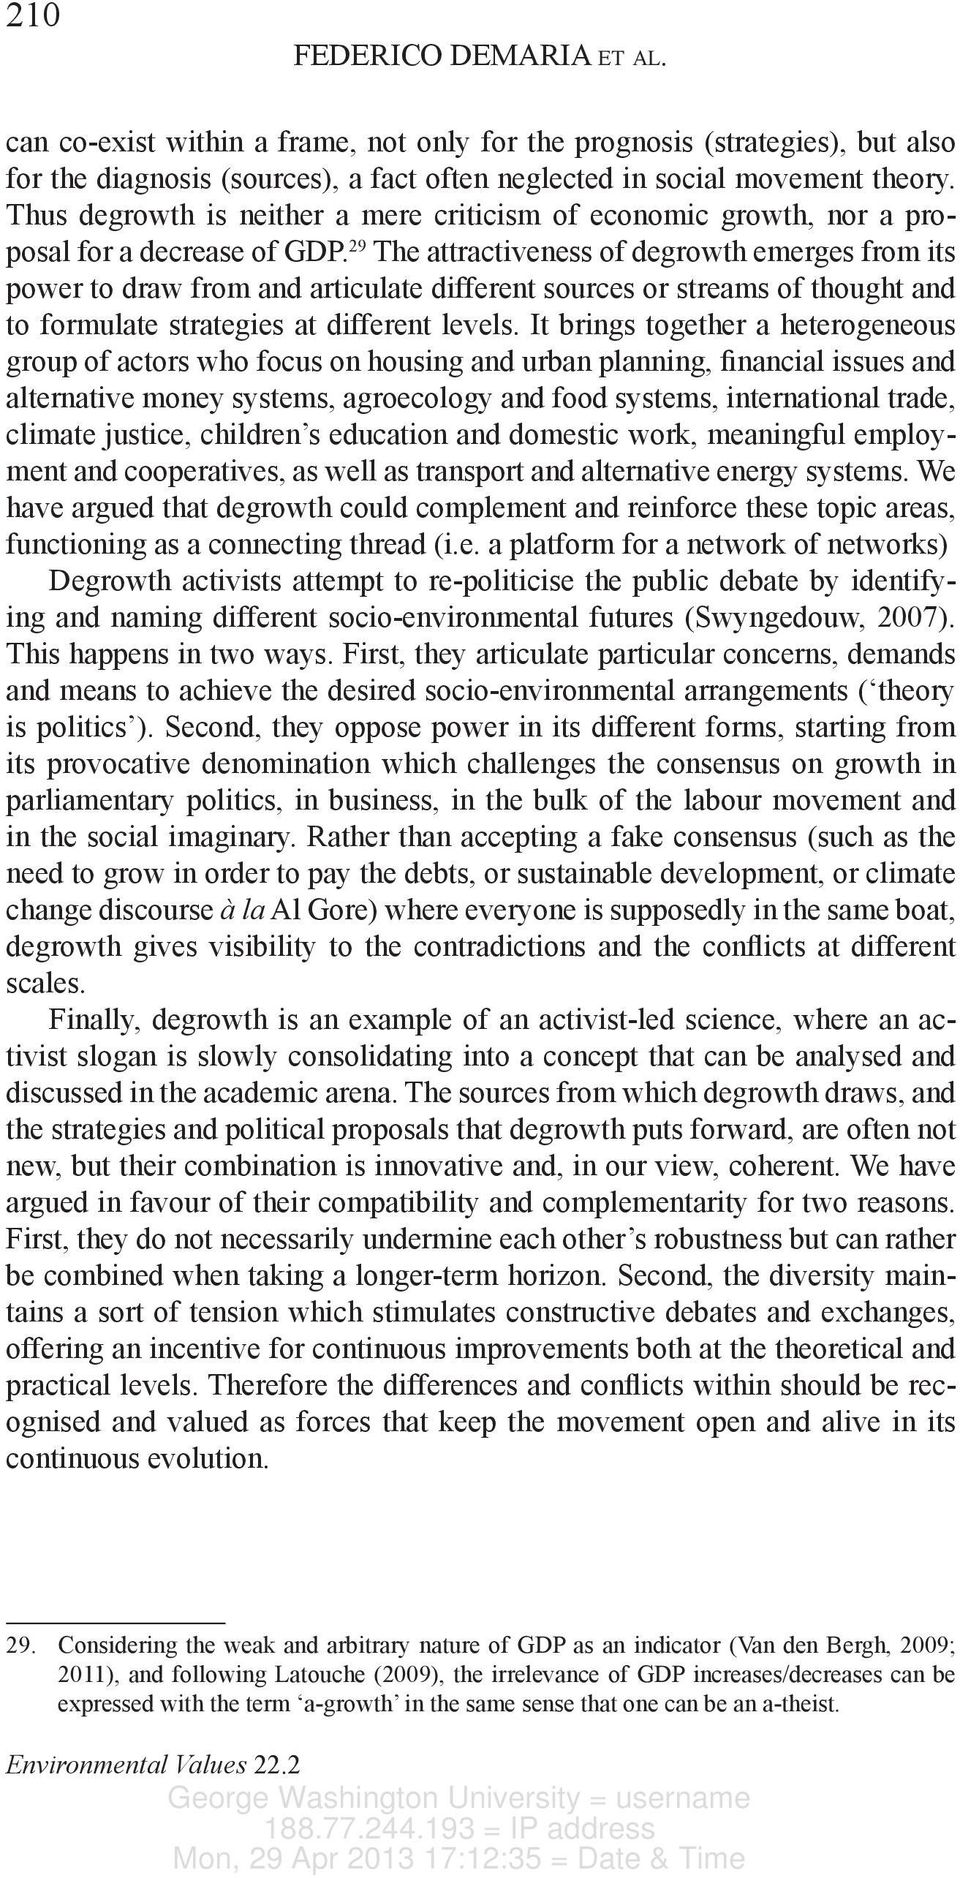 29 The attractiveness of degrowth emerges from its power to draw from and articulate different sources or streams of thought and to formulate strategies at different levels.